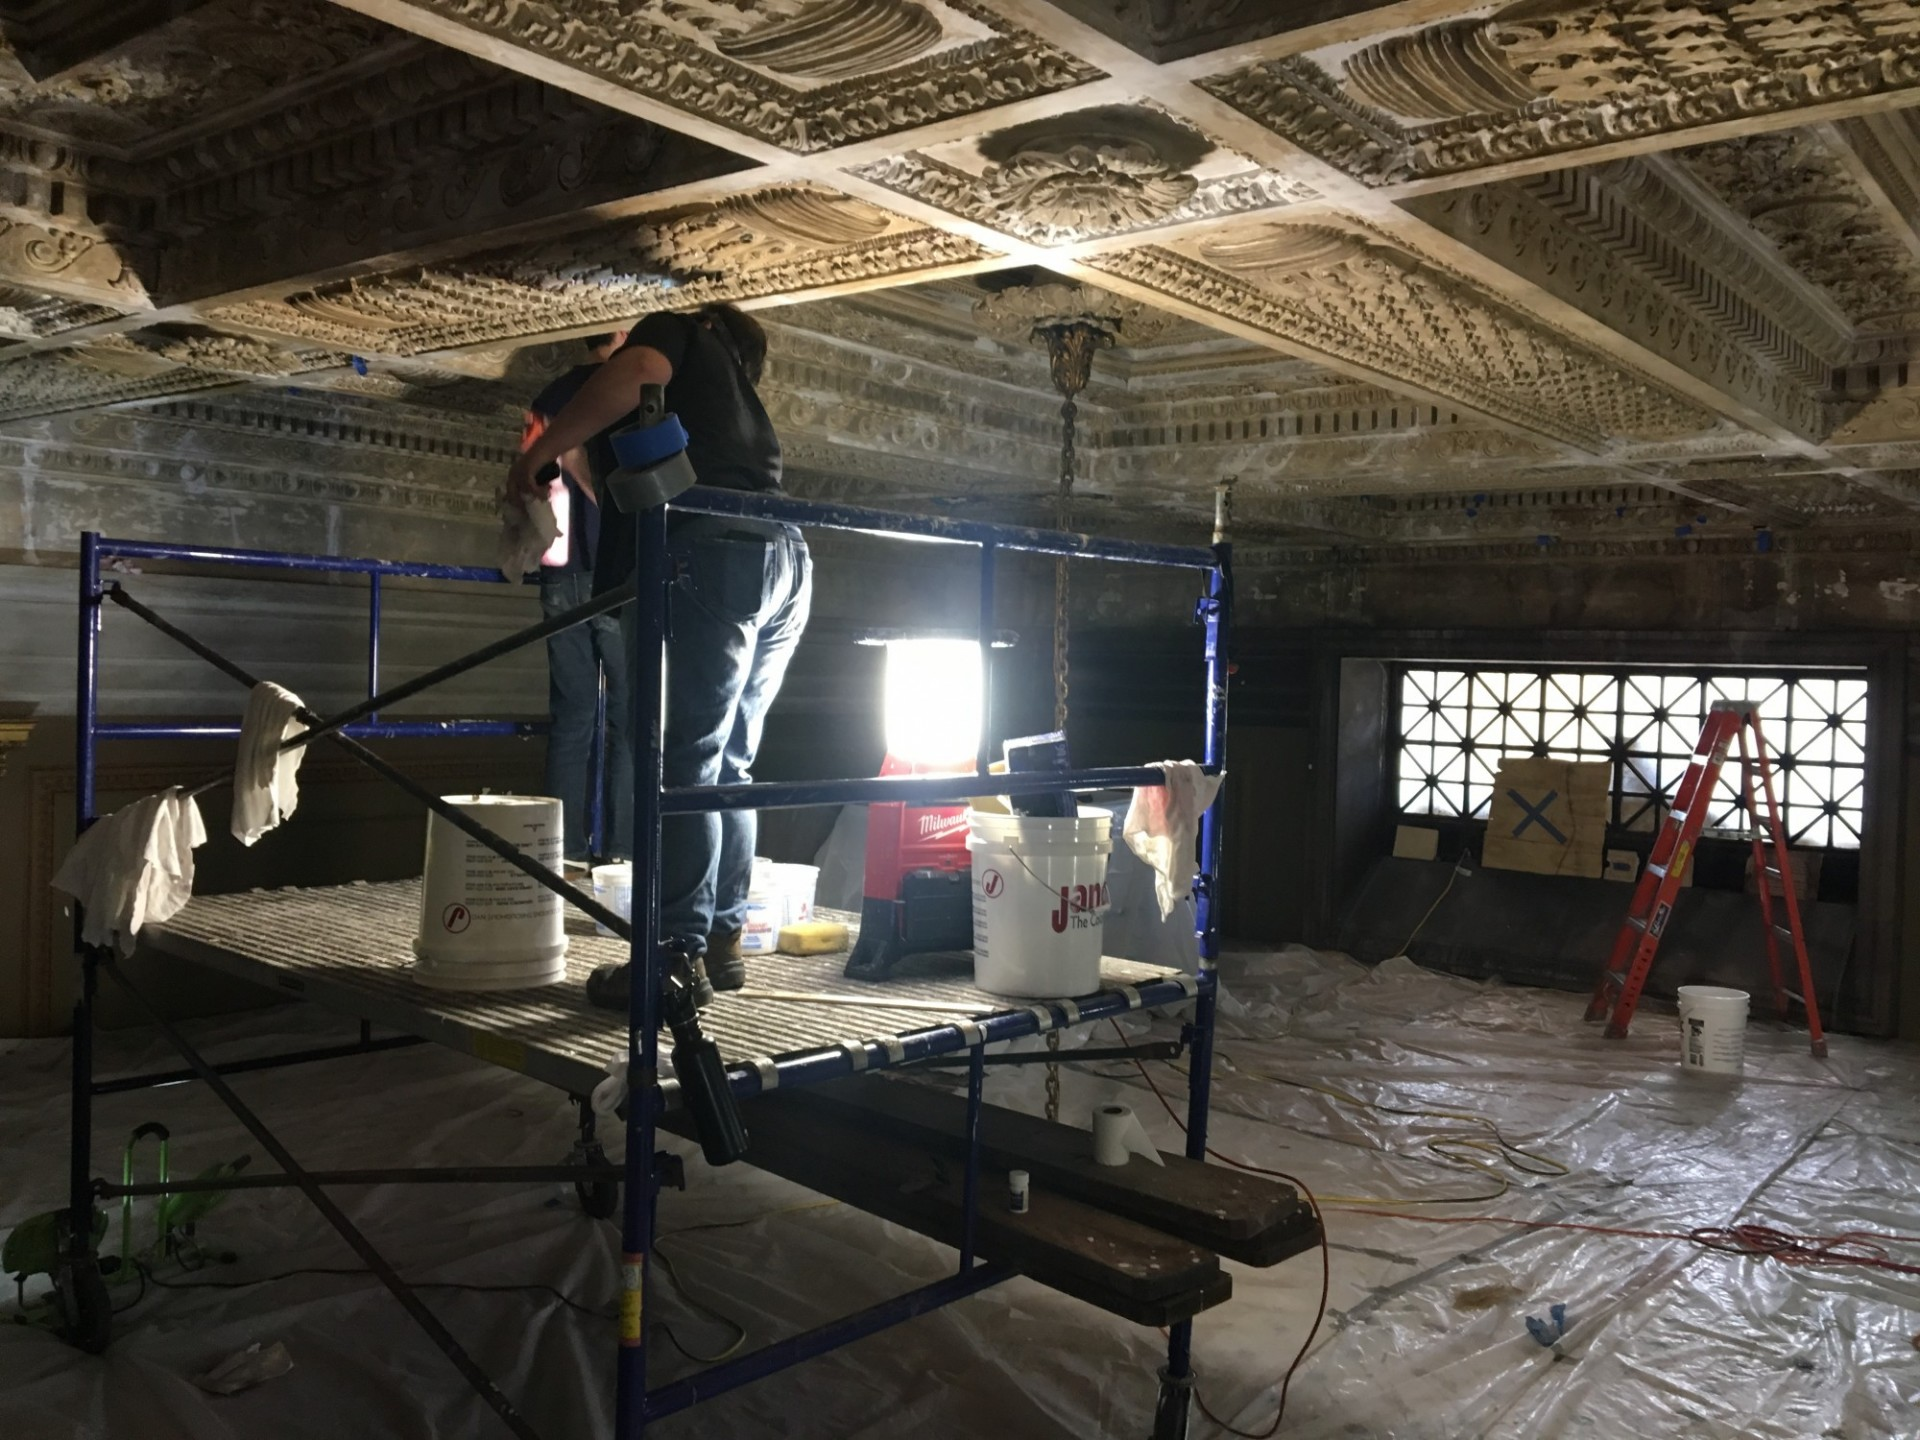 Conservators at work making repairs to the plaster ceiling. Site protection includes elaborate sound barriers with felt-tip panels, padding lining the walls., and plastic covering, collectively designed to minimize noise and protect from dust.